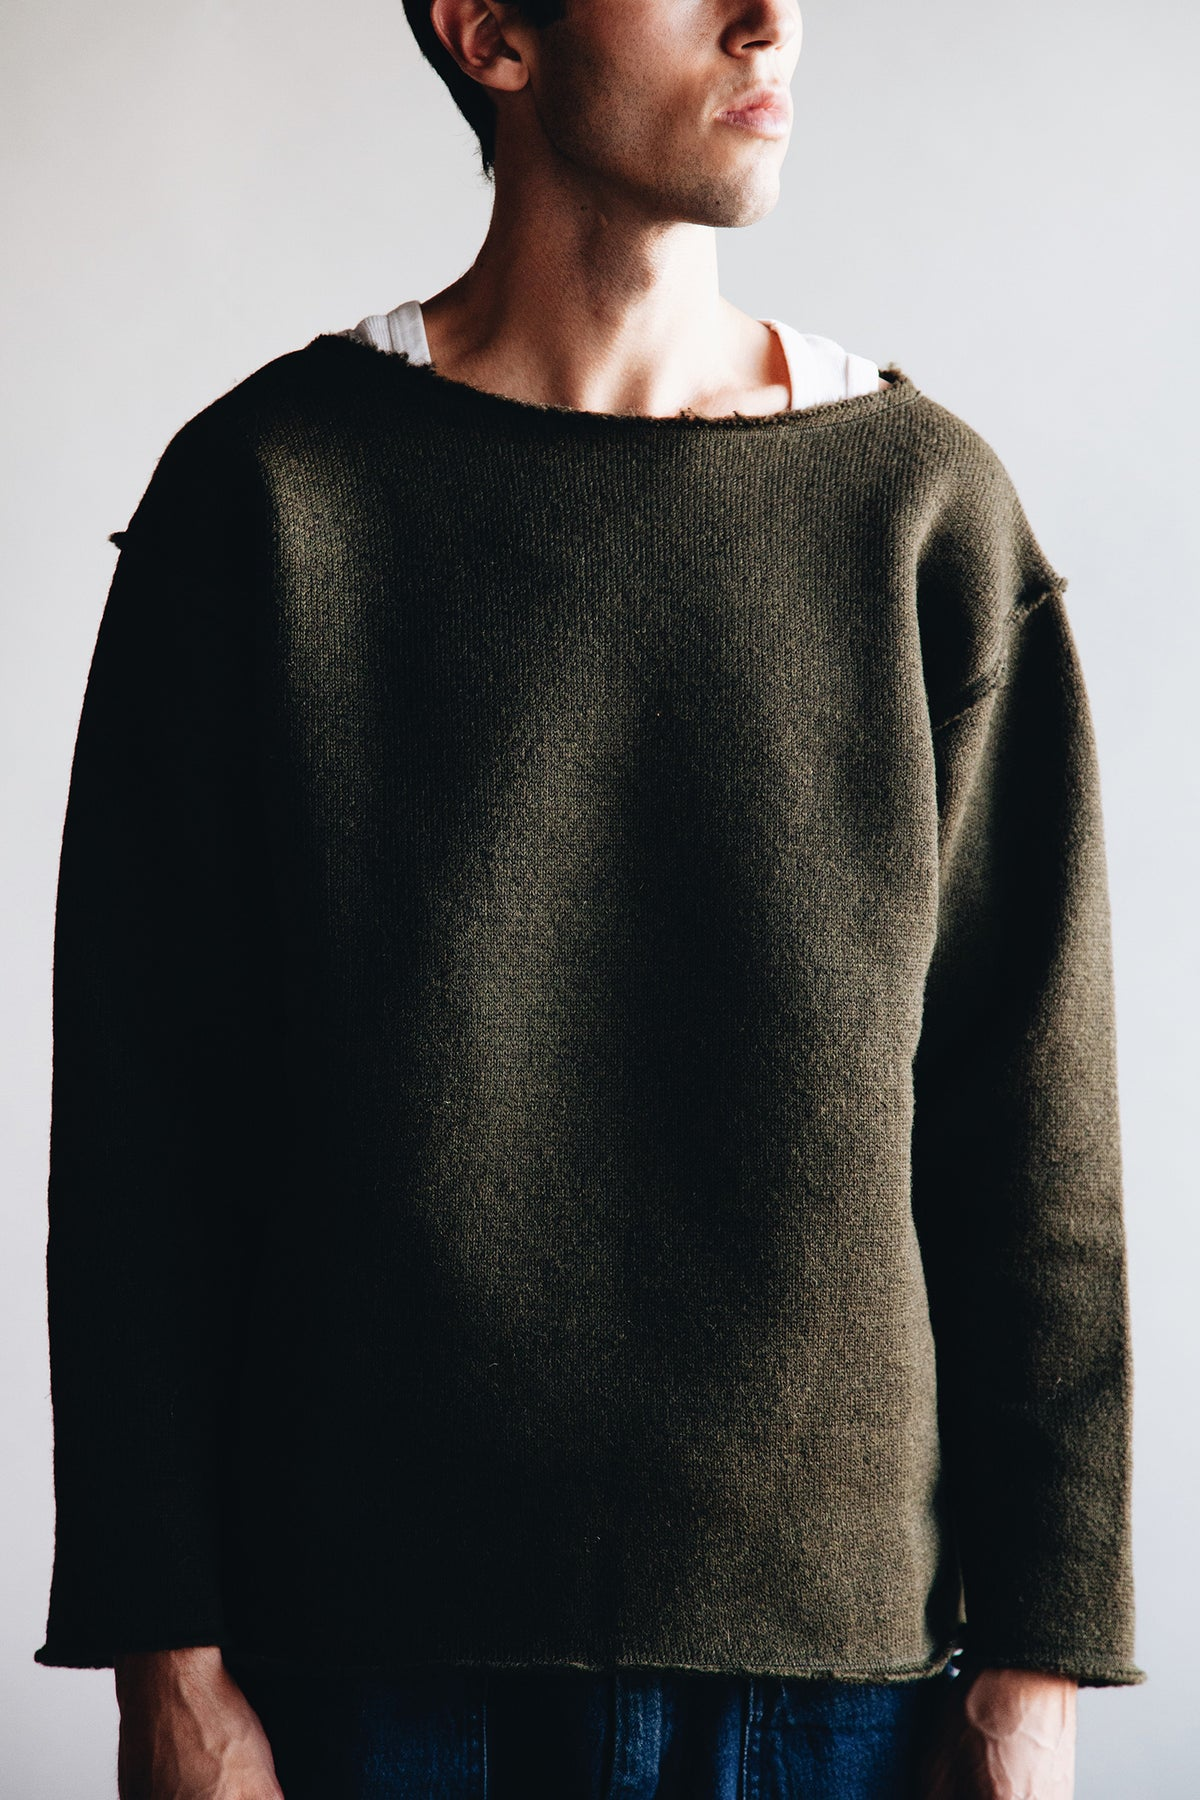 Needles - Long Sleeve Boat Neck Tee - Olive - Canoe Club